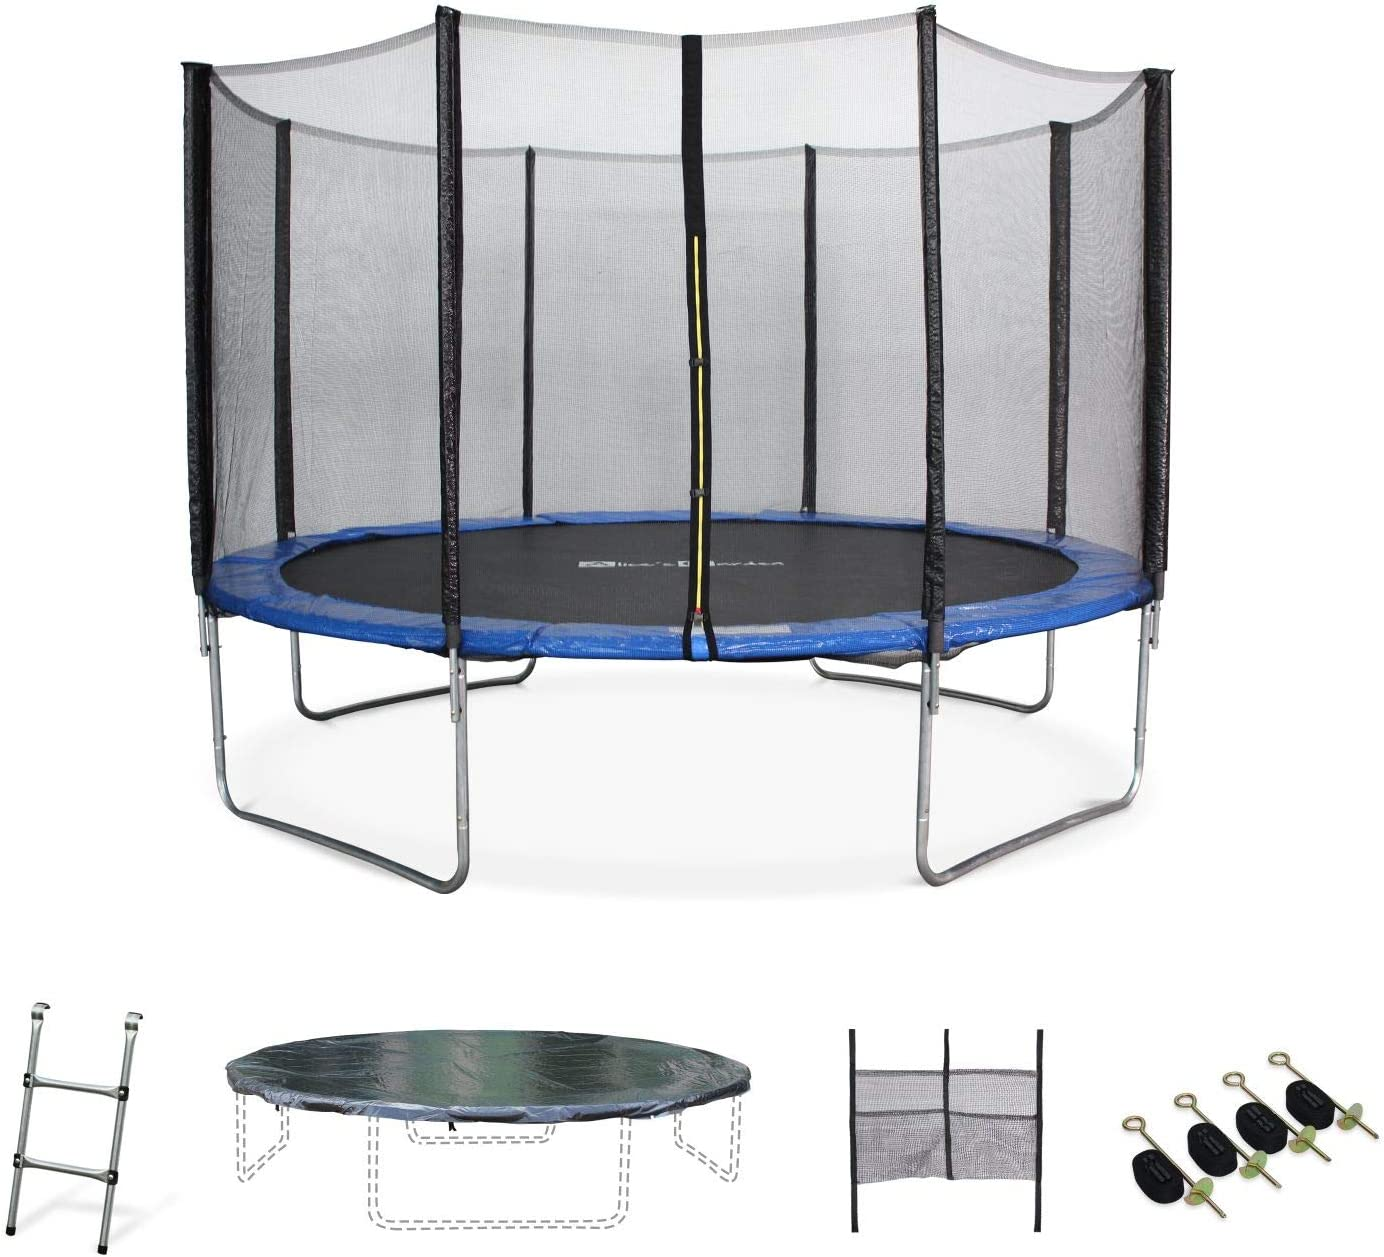 Alice S Garden 12ft Trampoline Blue Safety Enclosure Ladder Cover Storage Net For Shoes And Anchor Kit Reinforced Frame Max User Weight 100kg 220lbs 150kg 330lbs Using The Anchor Kit